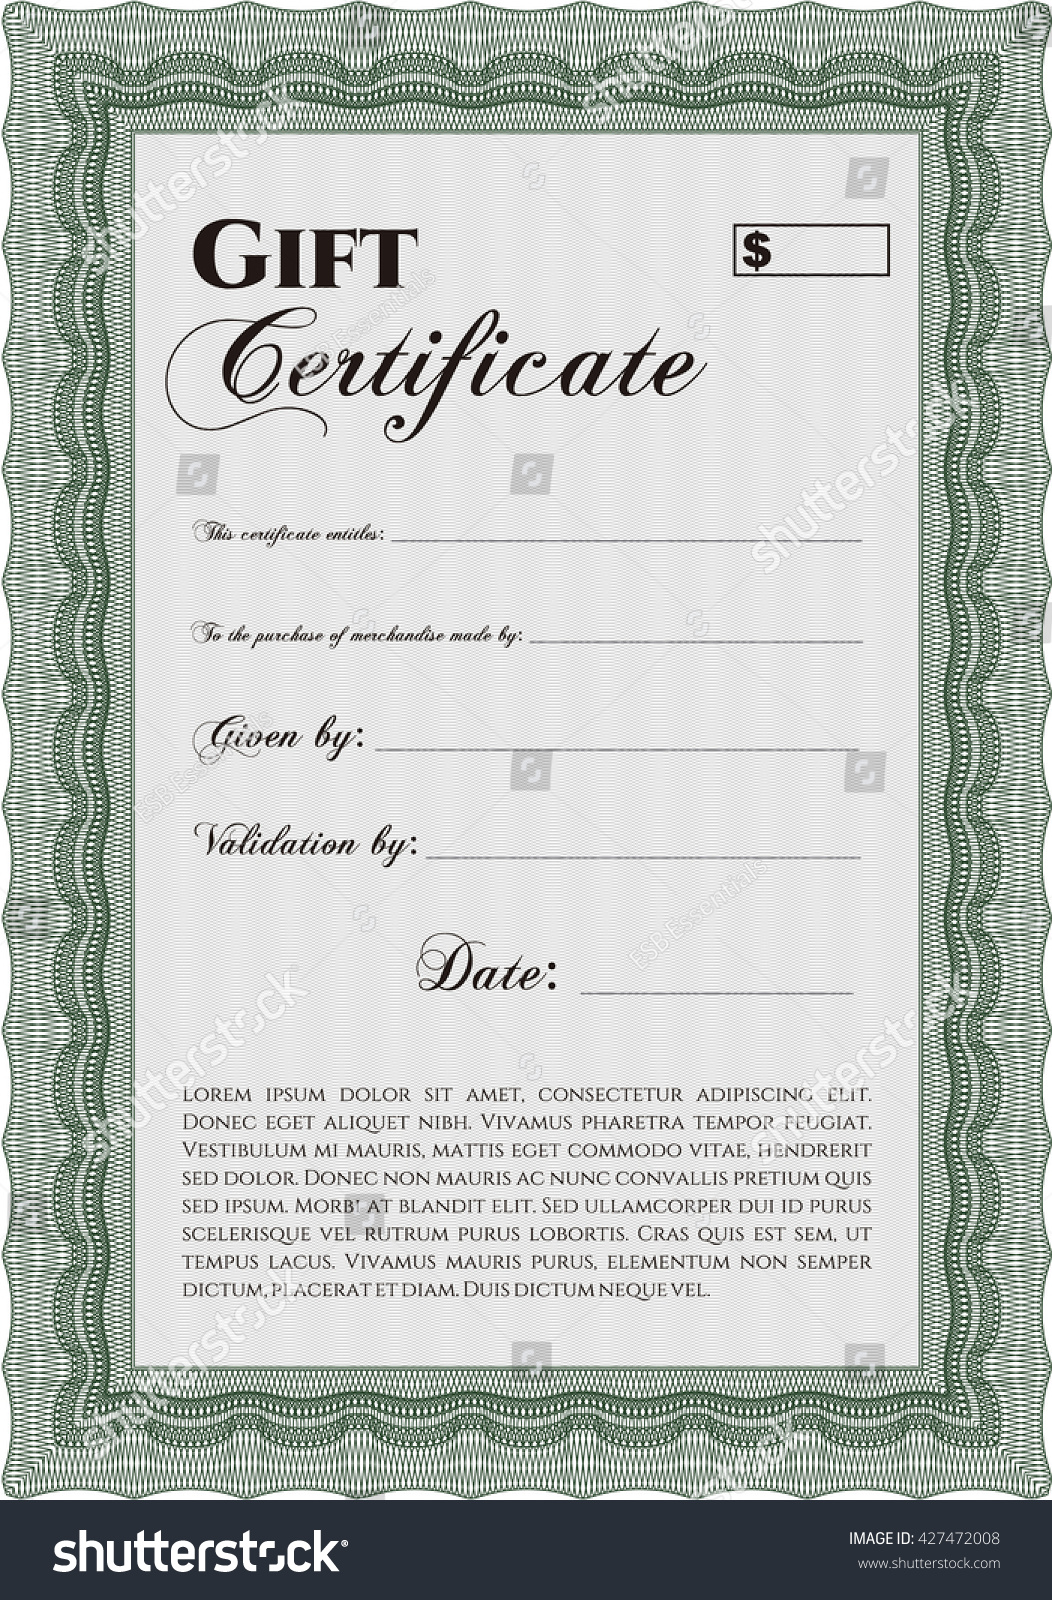 Gftlz gift certificate template images templates example free gftlz gift certificate template alramifo images yadclub Image collections